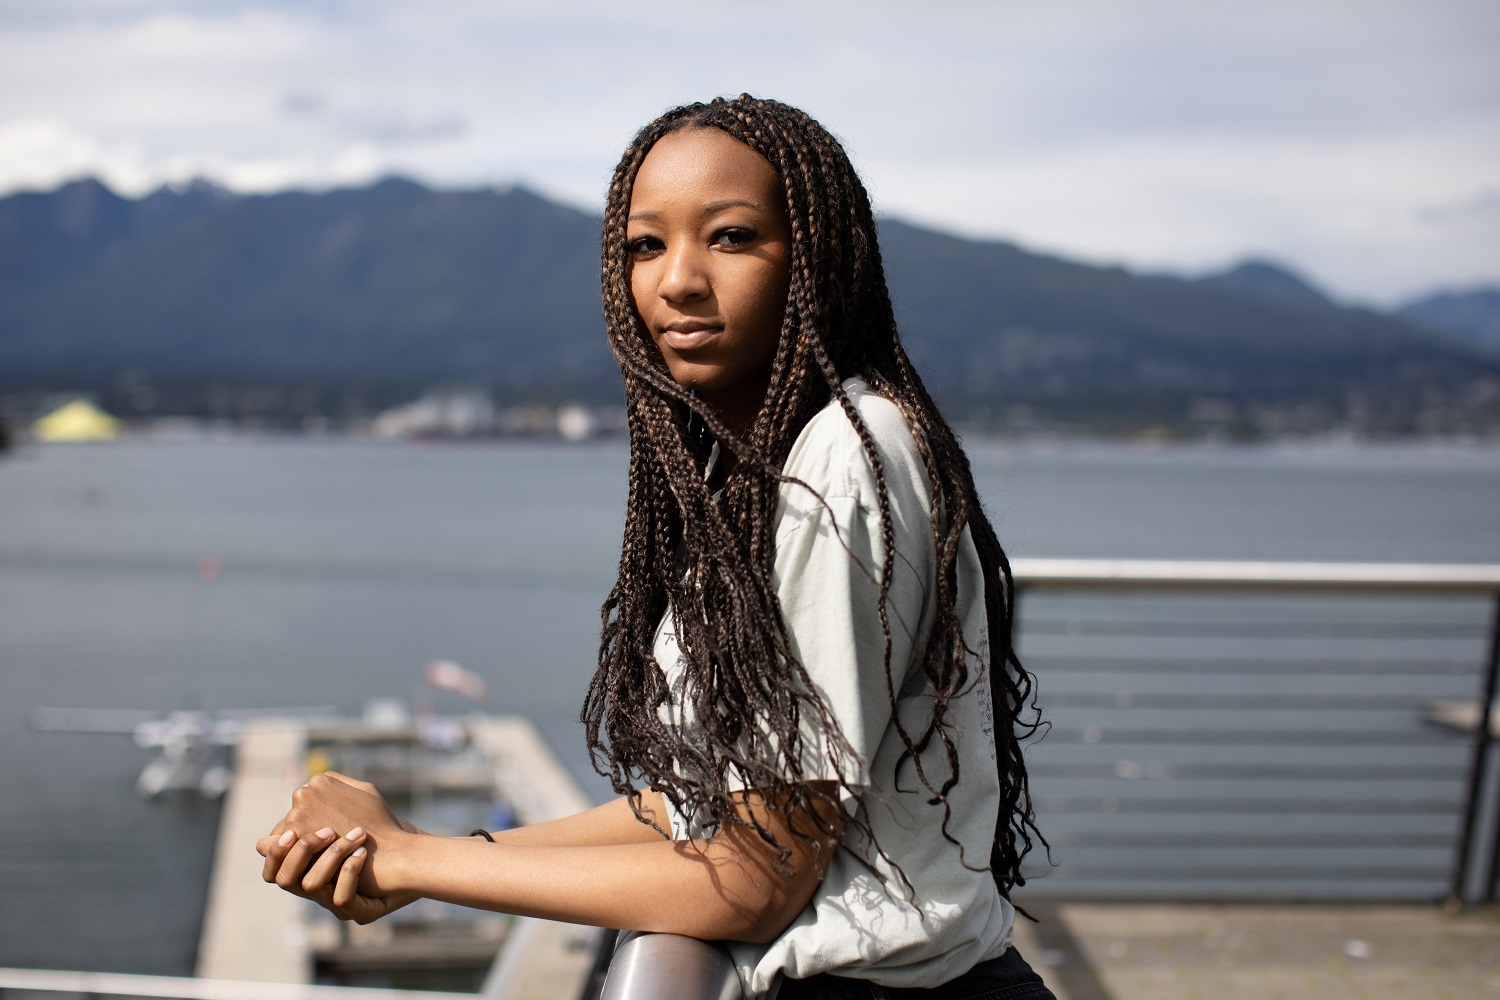 Jacqueline Hakizimana, 16, says the school system is not doing an adequate job of addressing racism. She is calling for real consequences for racist actions rather than using them simply as teachable moments.